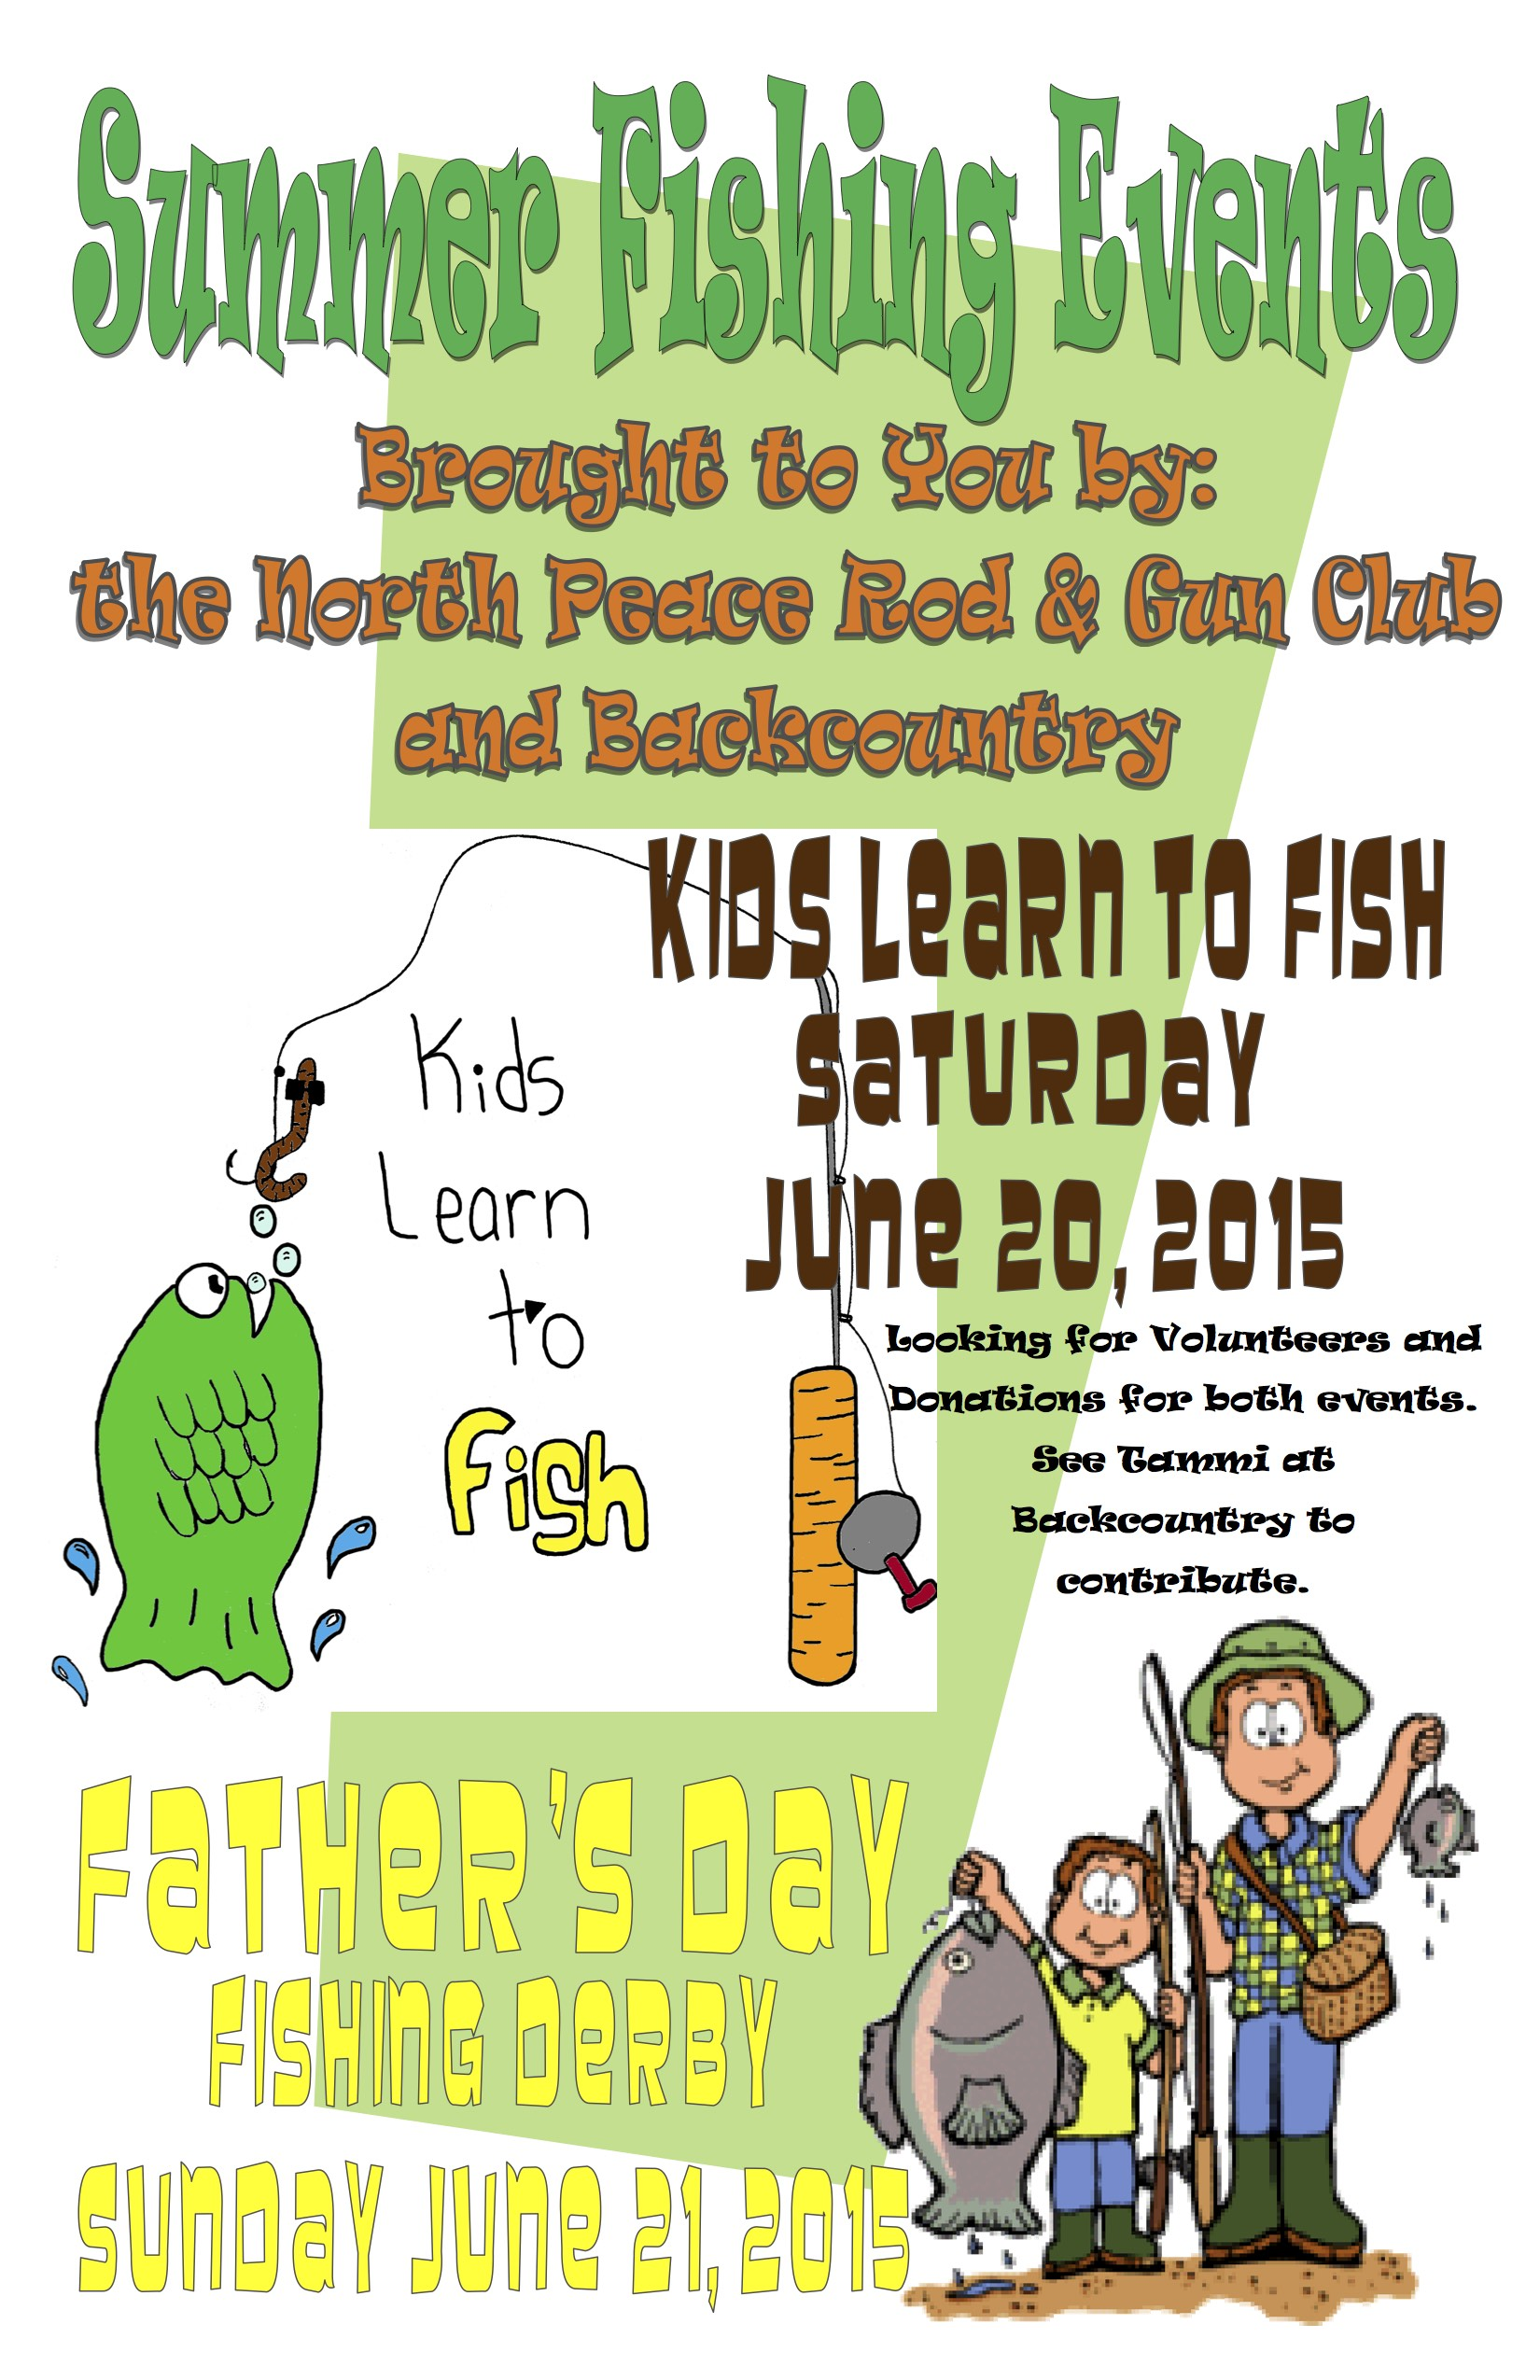 Kids learn to fish 2015 north peace rod and gun club for Learn to fish